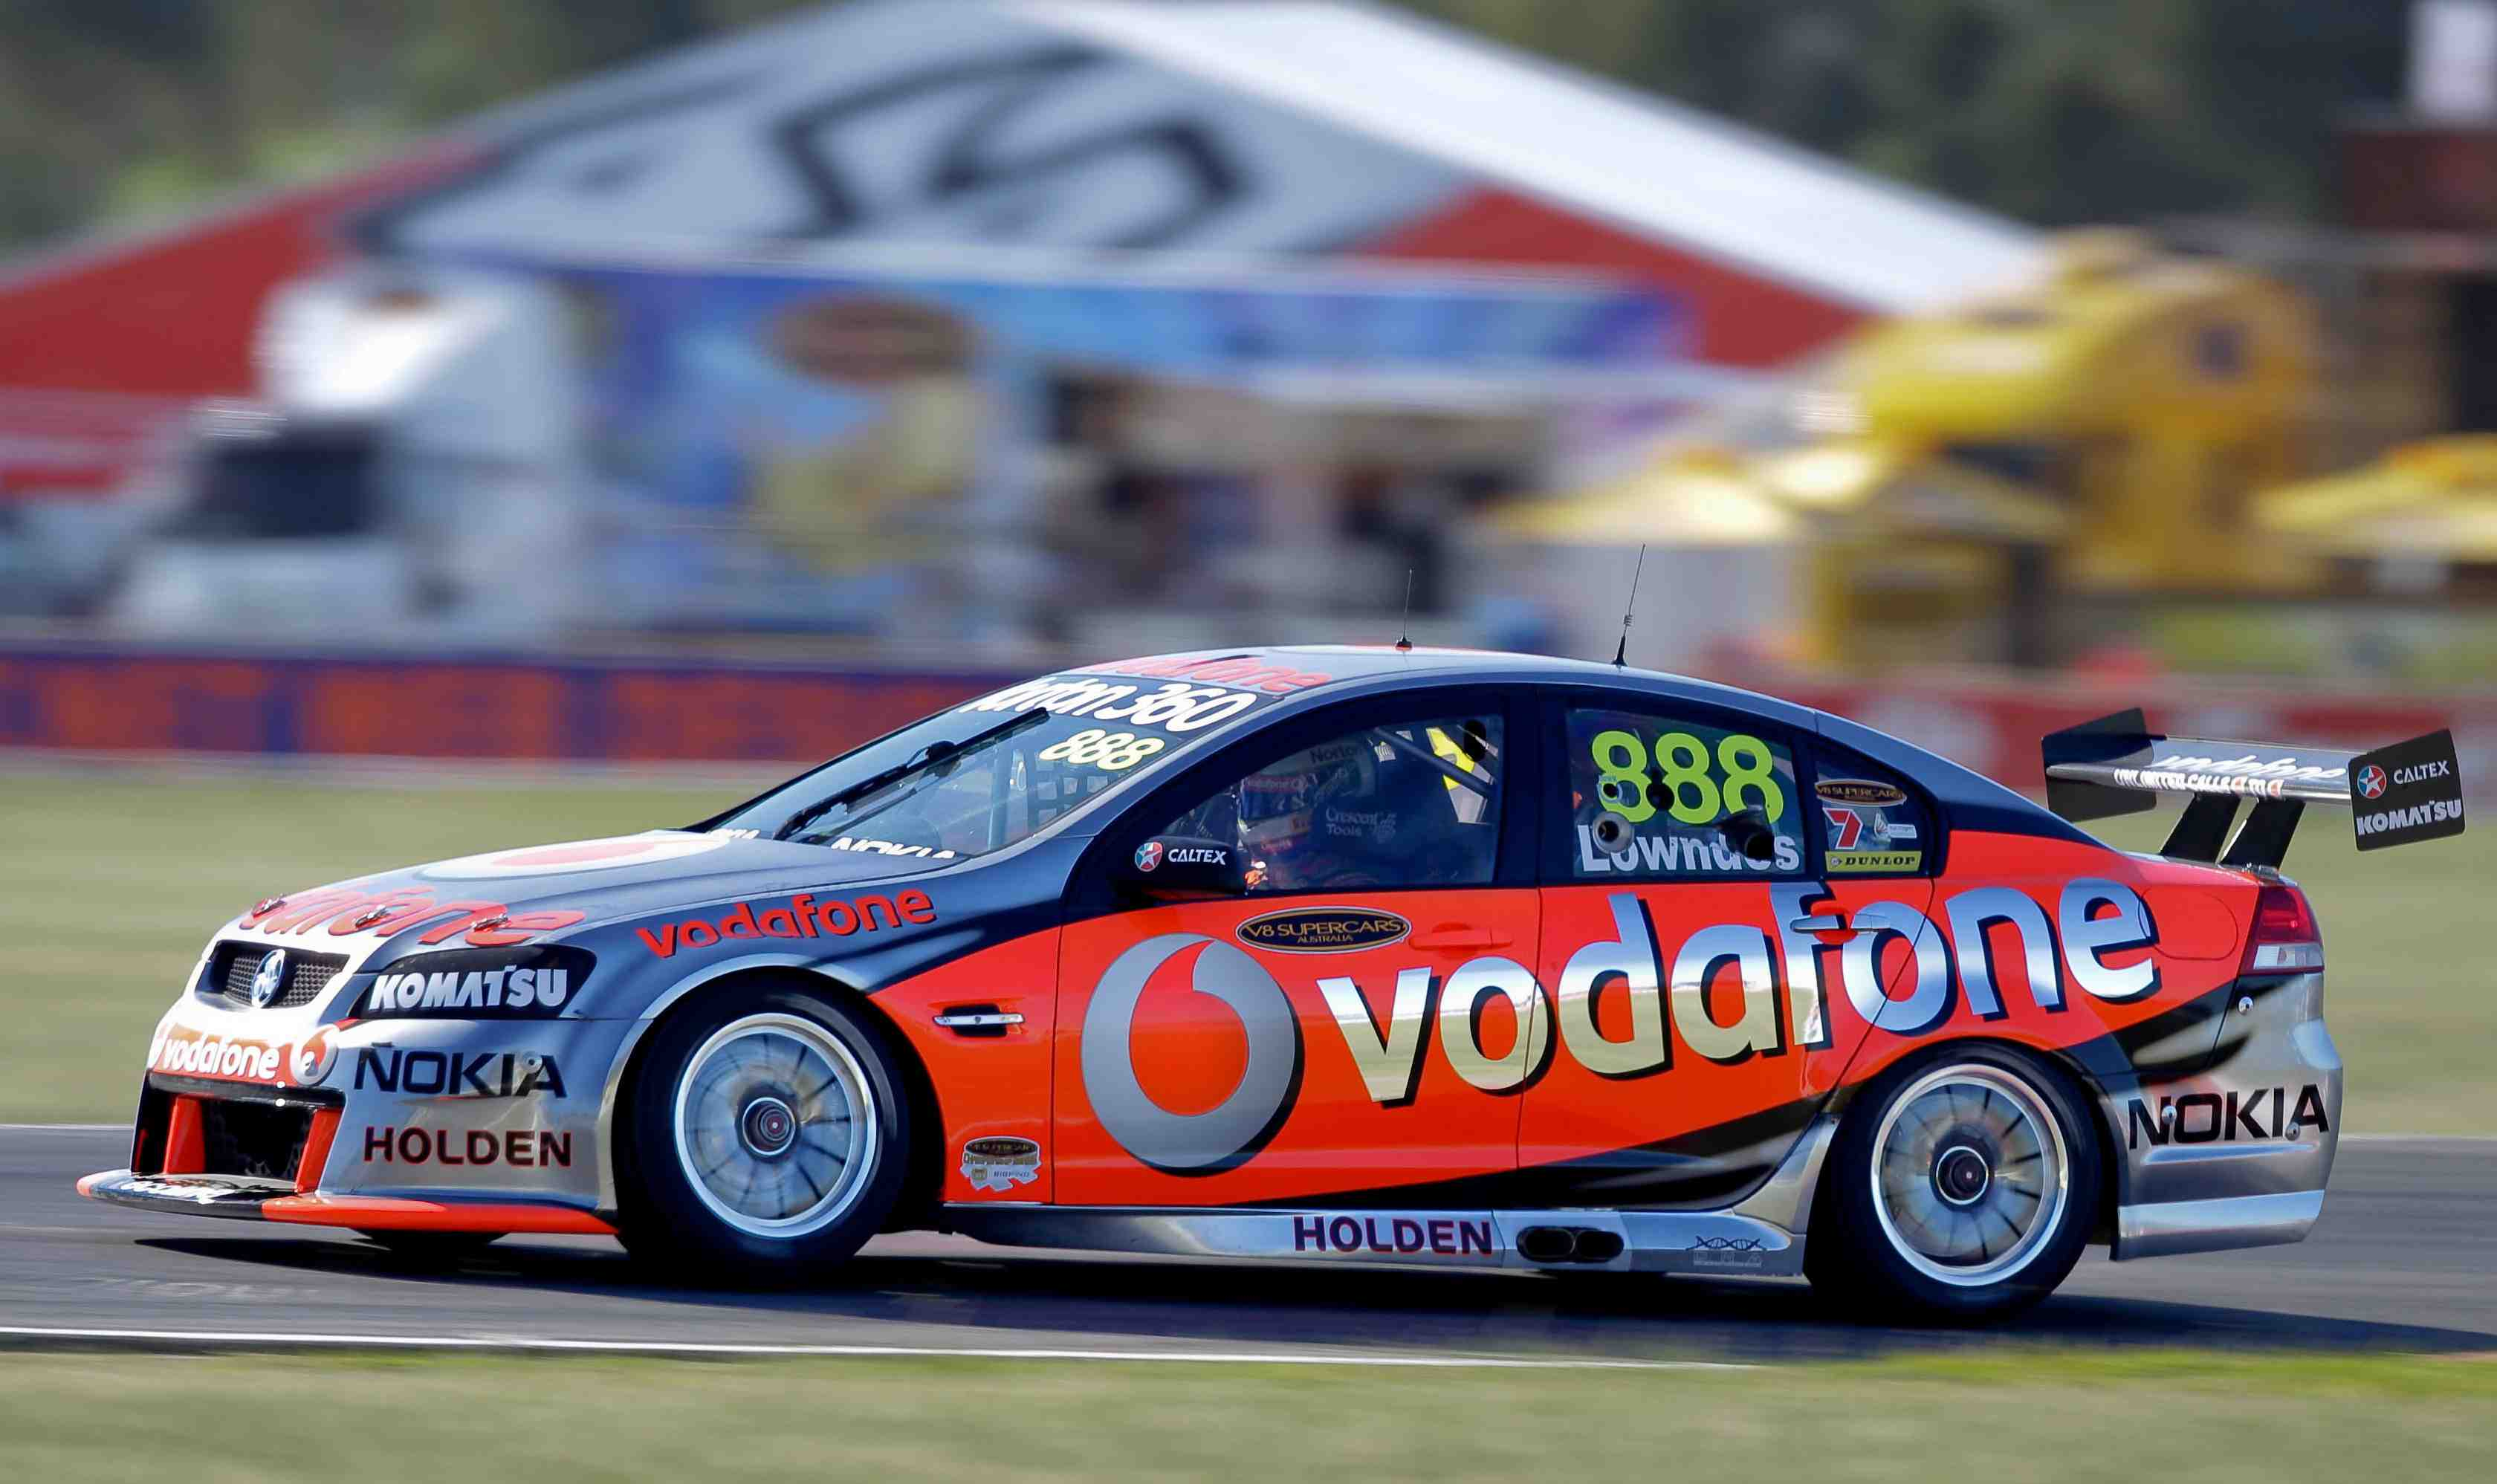 Lowndes full of confidence after V8 practice